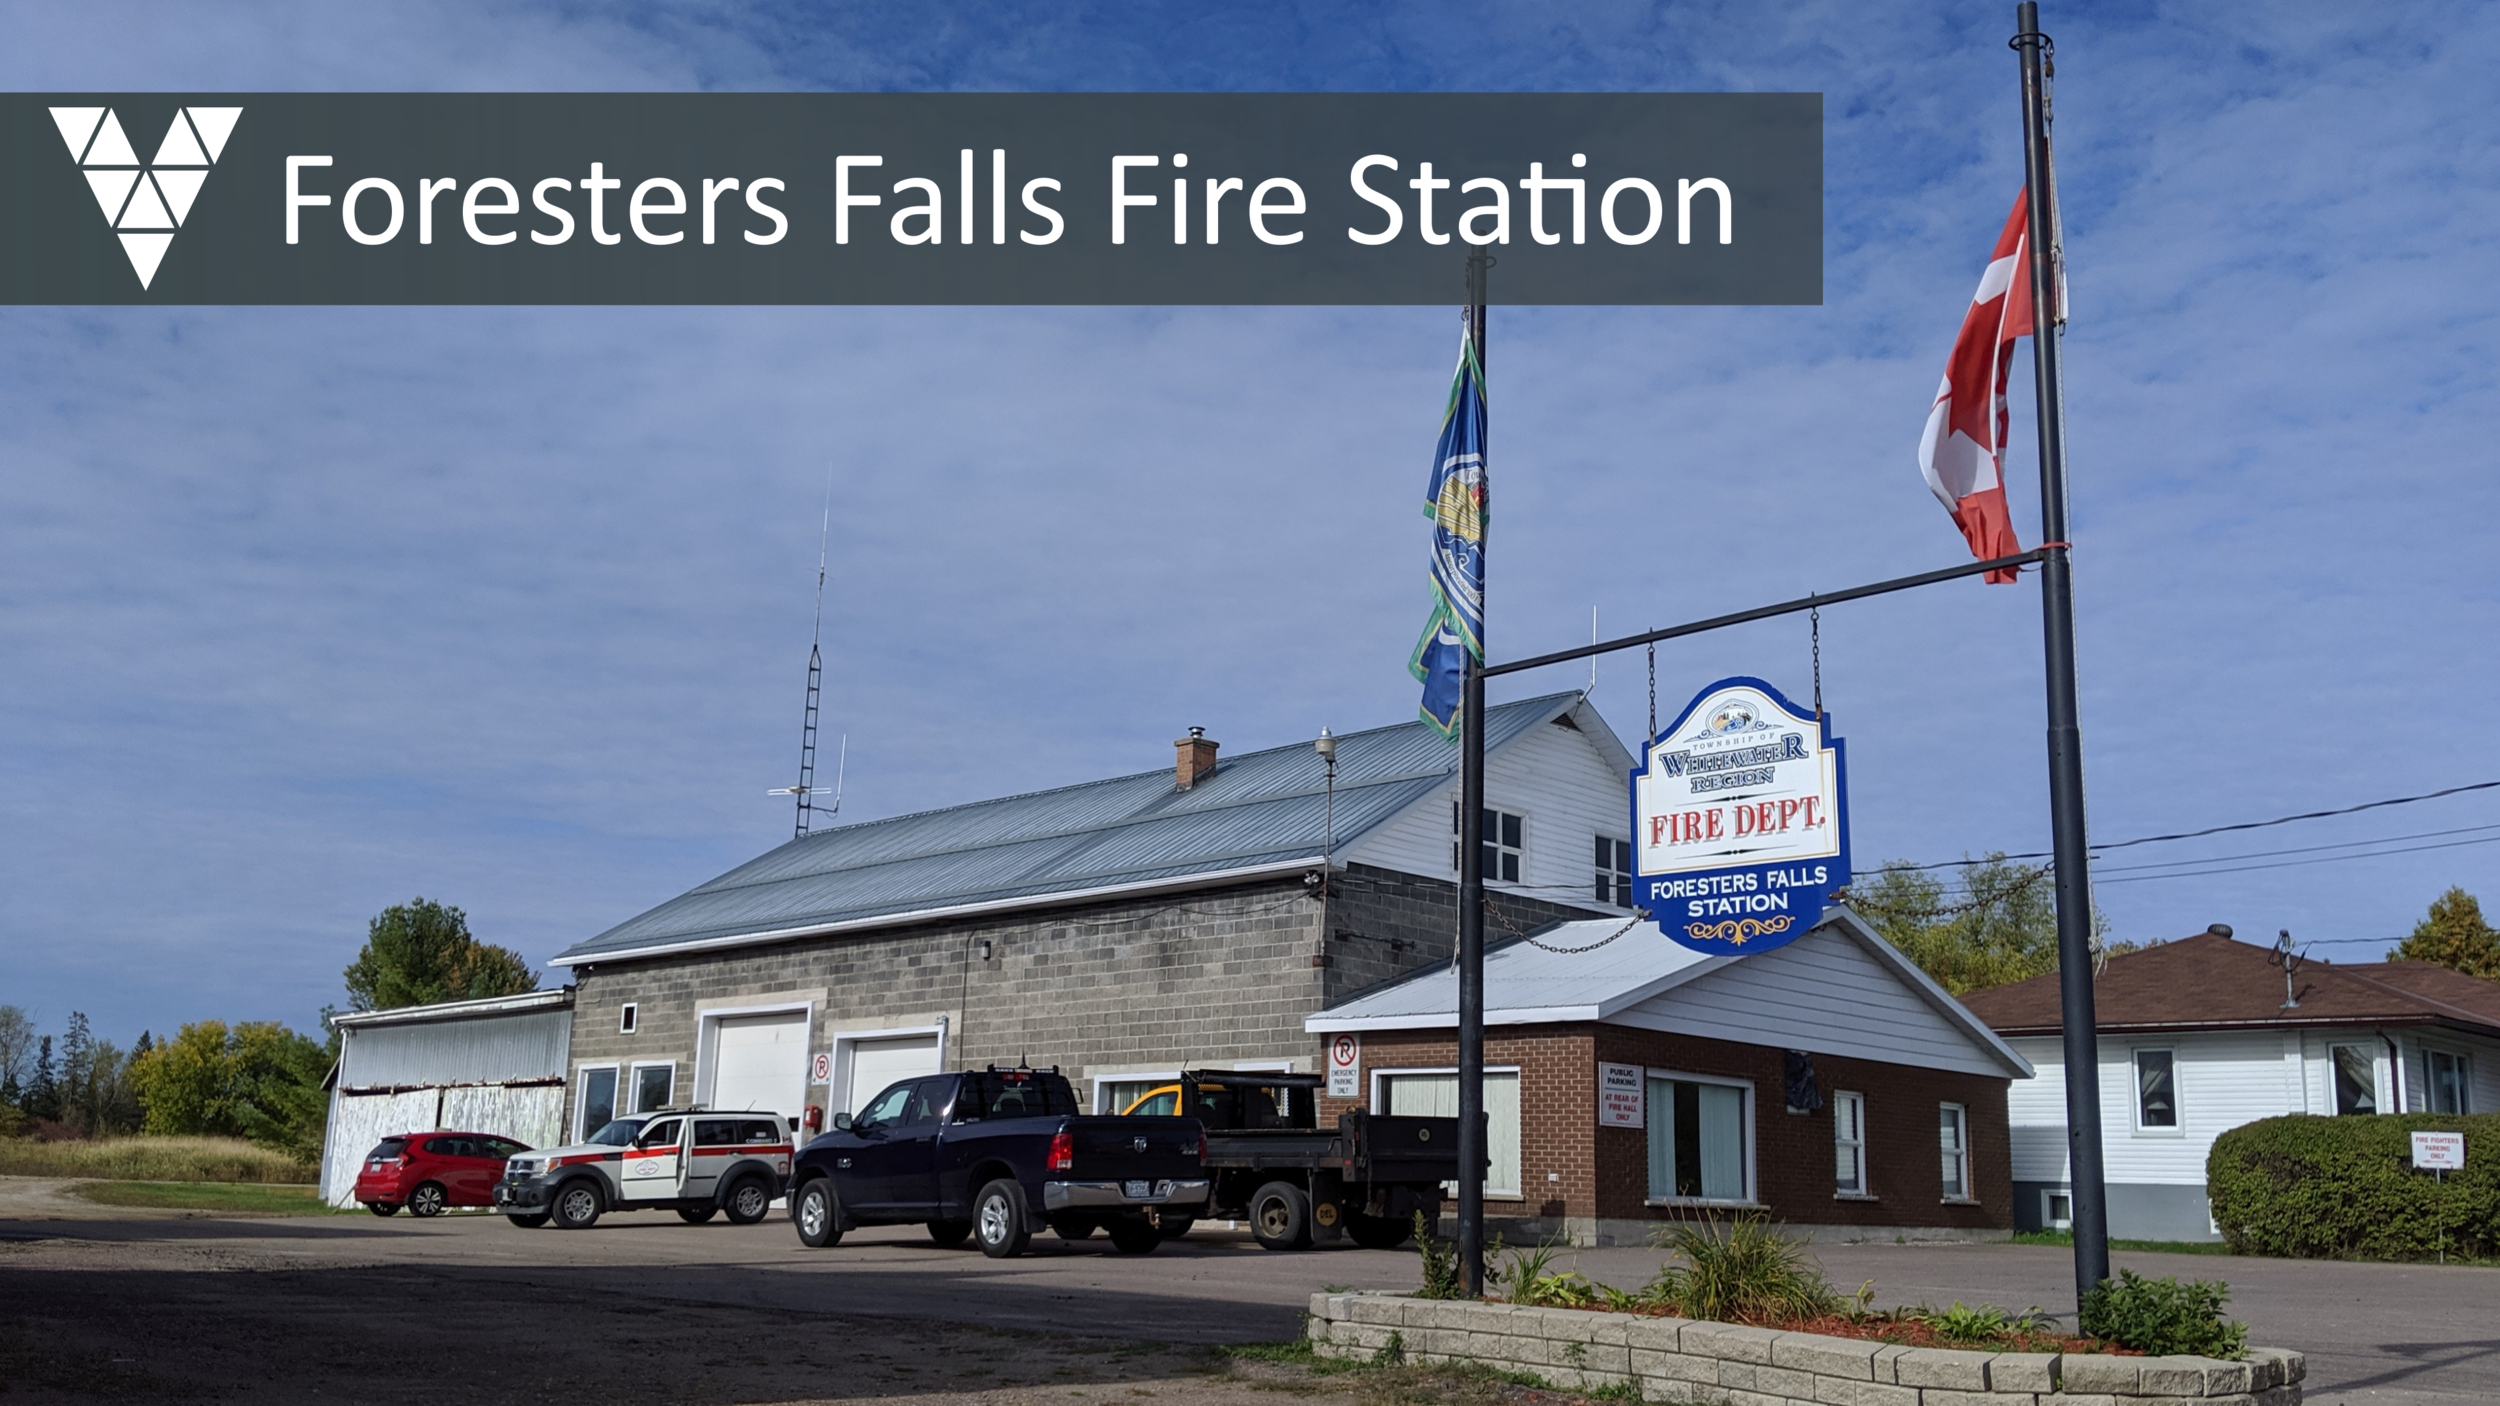 Foresters Falls Fire Station